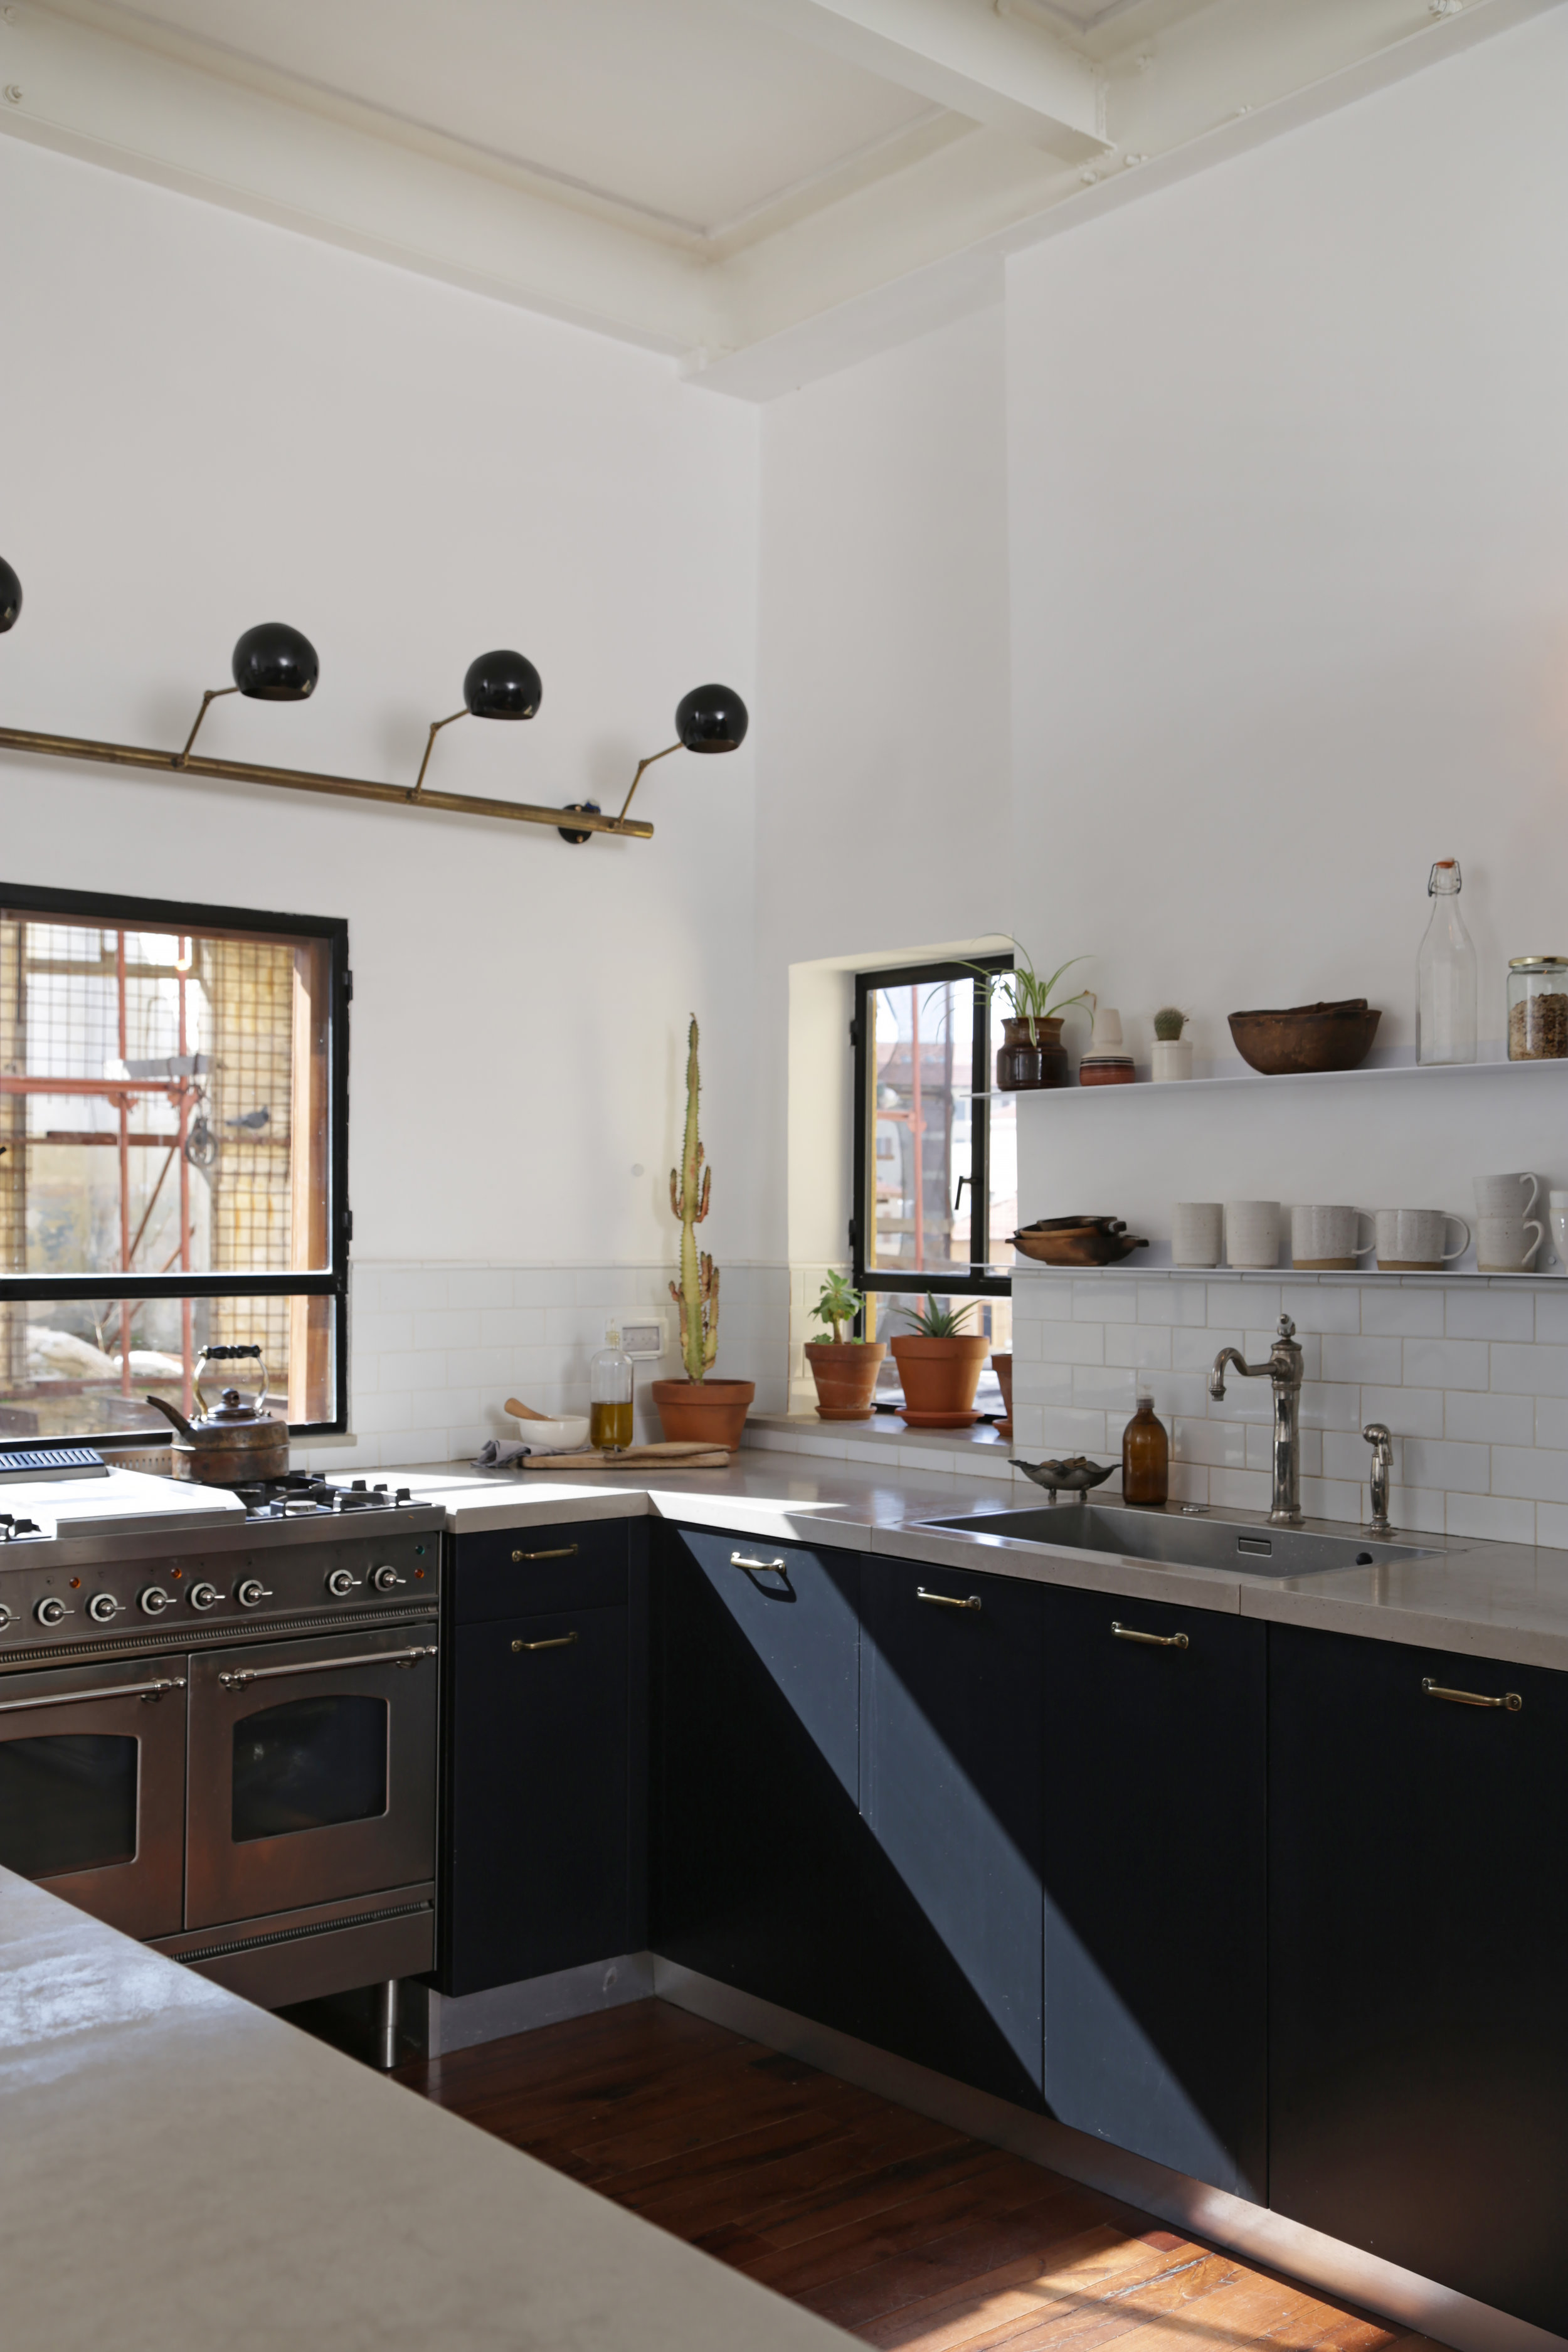 ben zoma kitchen.jpg